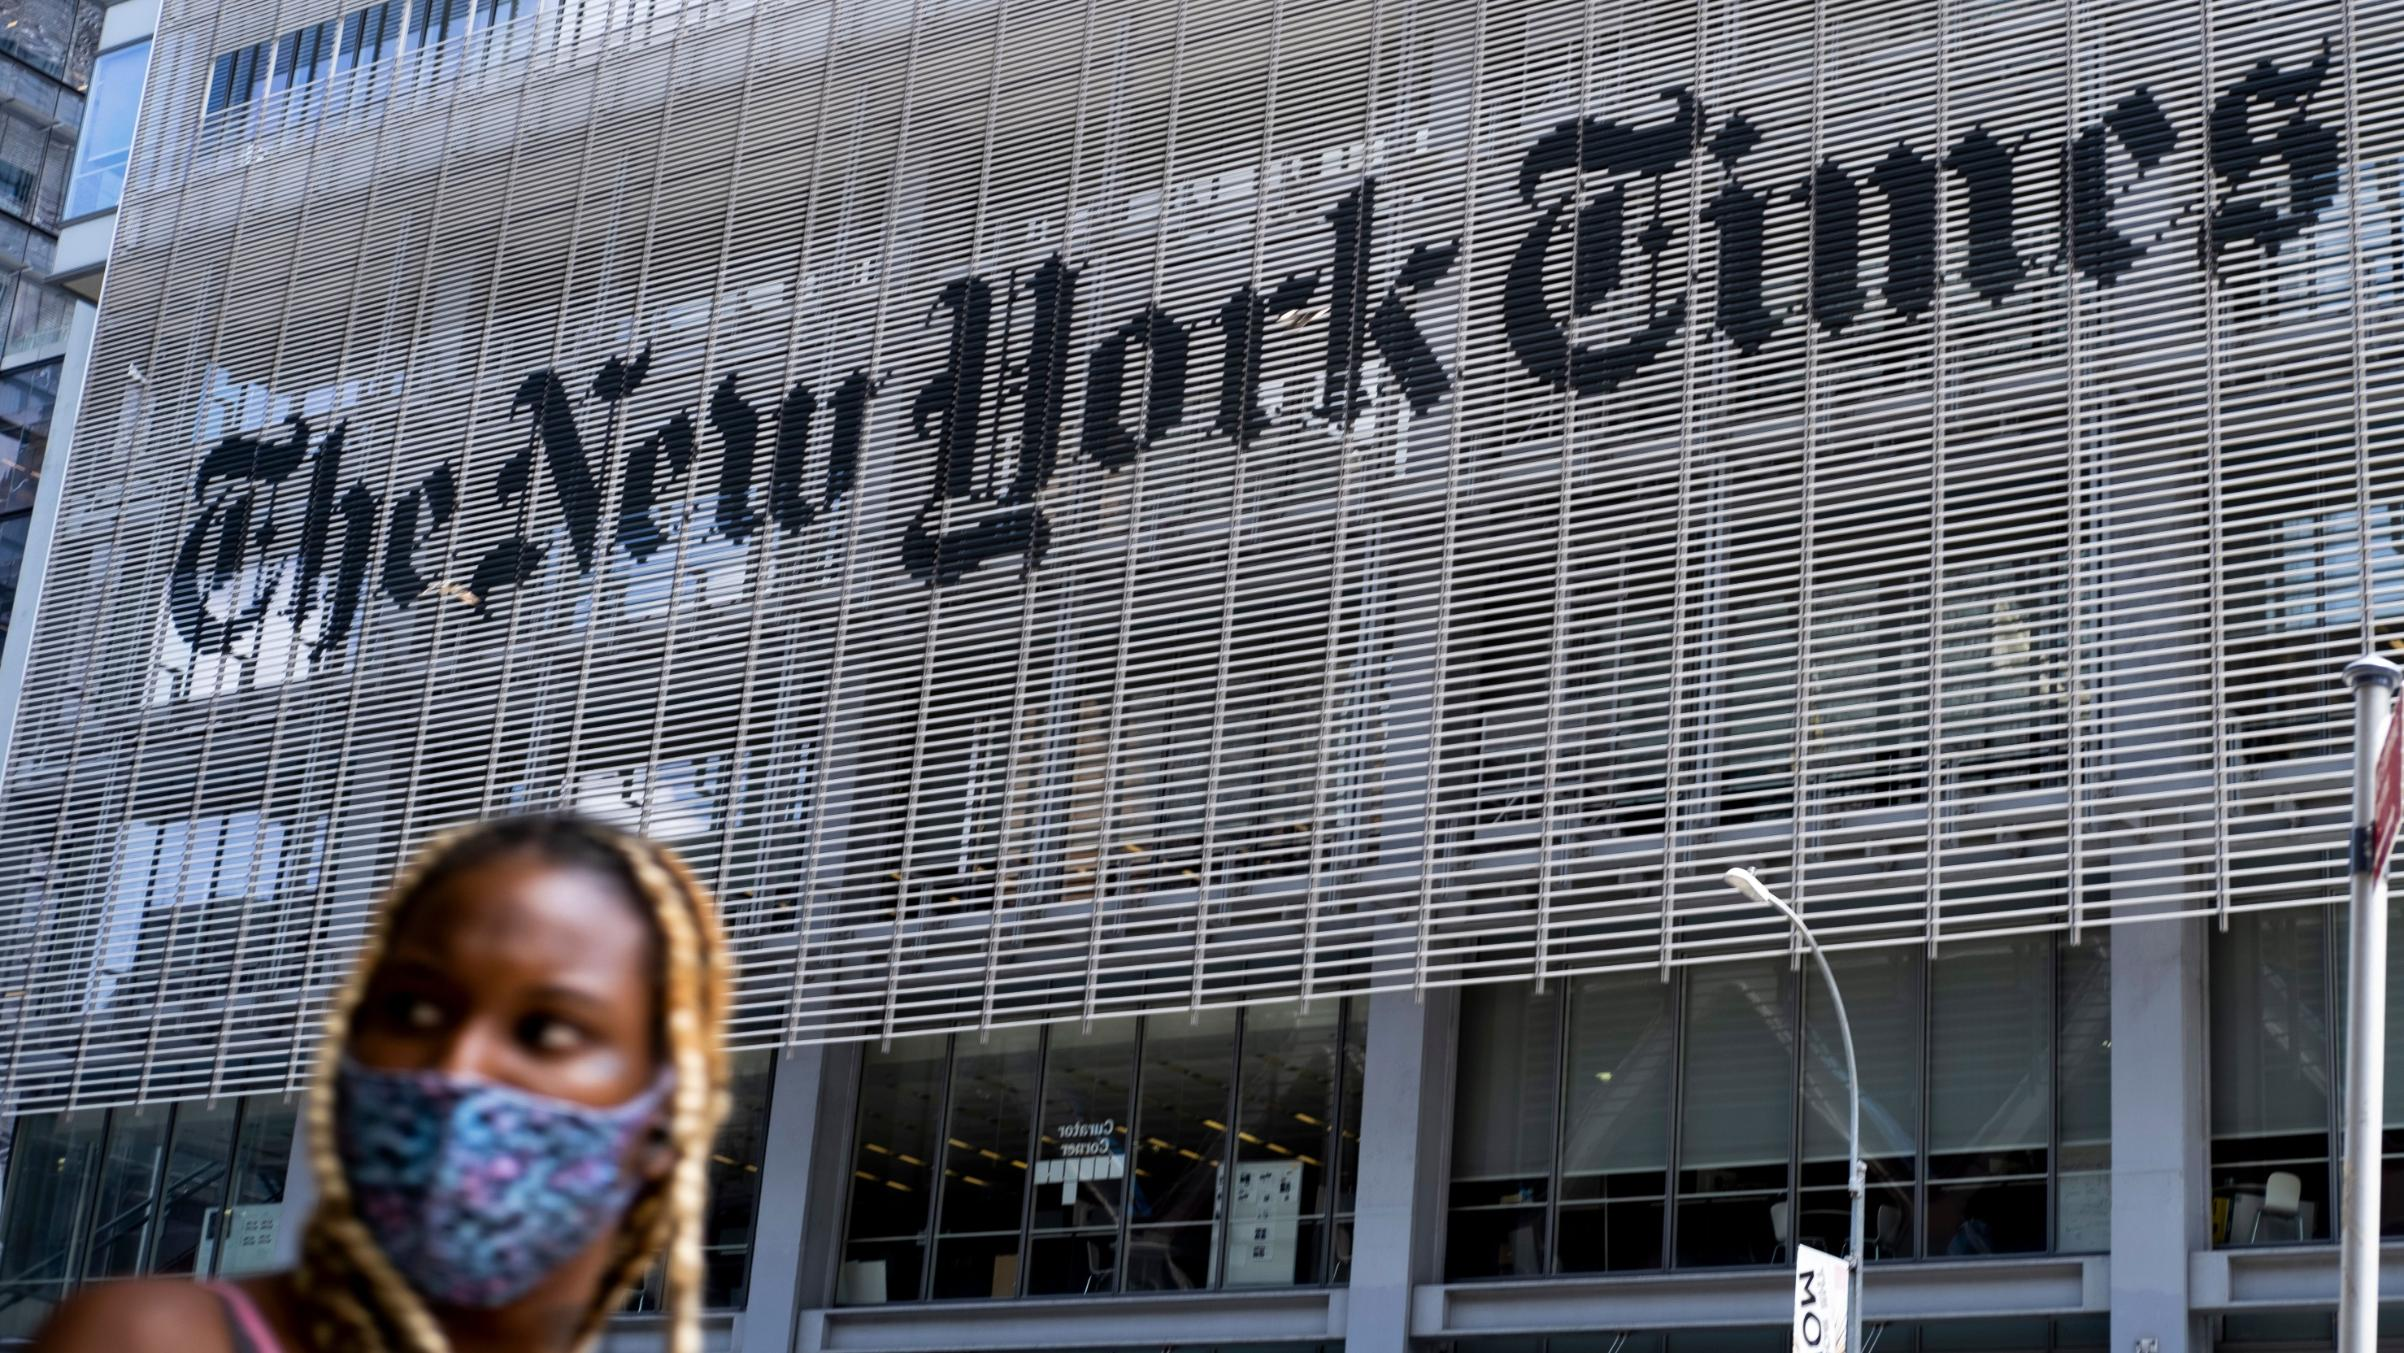 New York Times' digital revenue exceeds print for first time ever